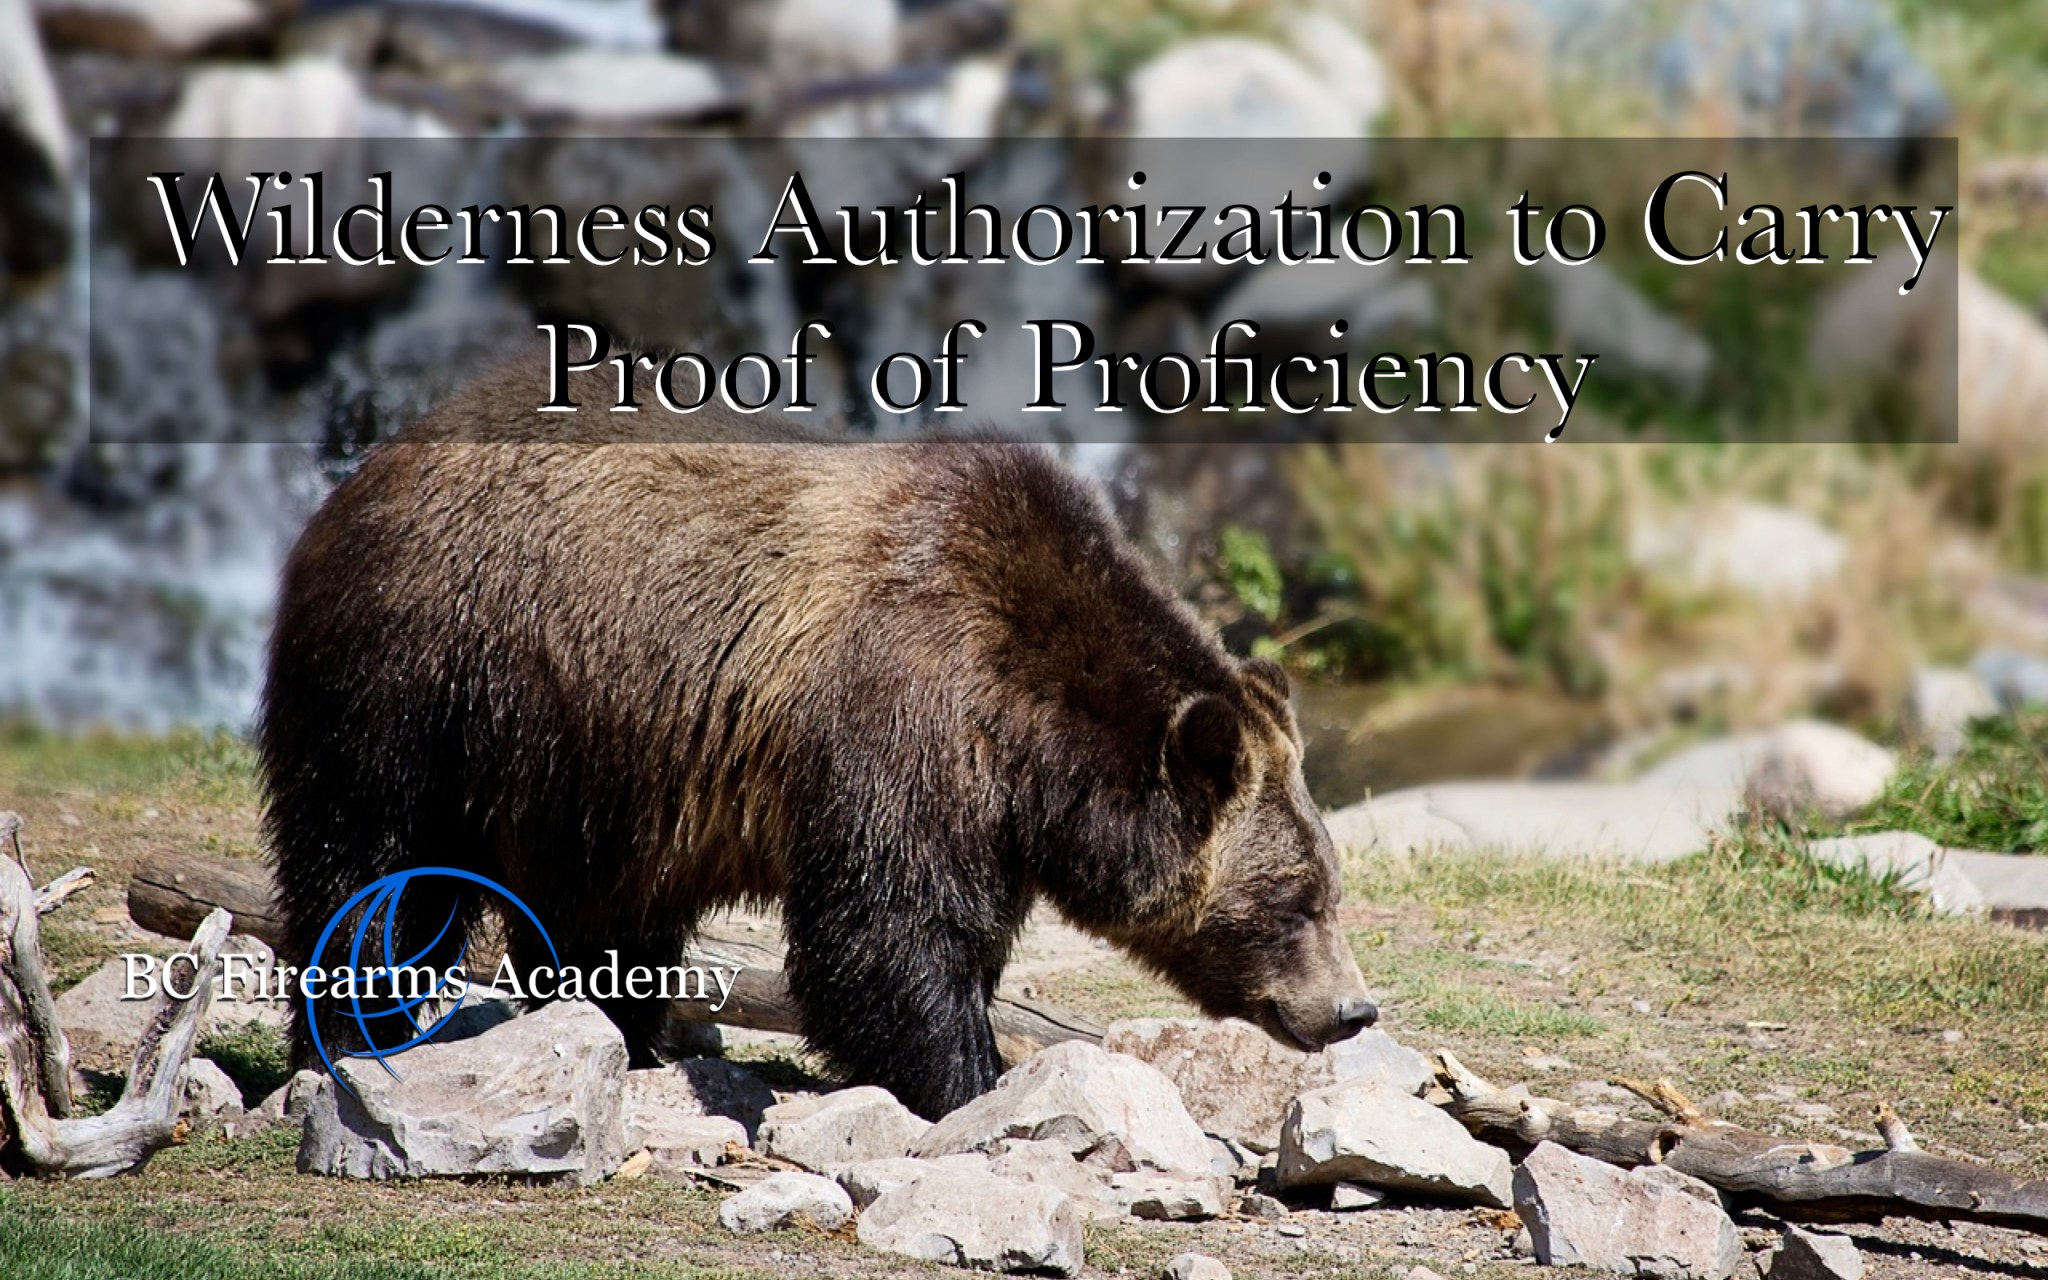 WATC – Wilderness Authorization to Carry Proof of Proficiency May 25